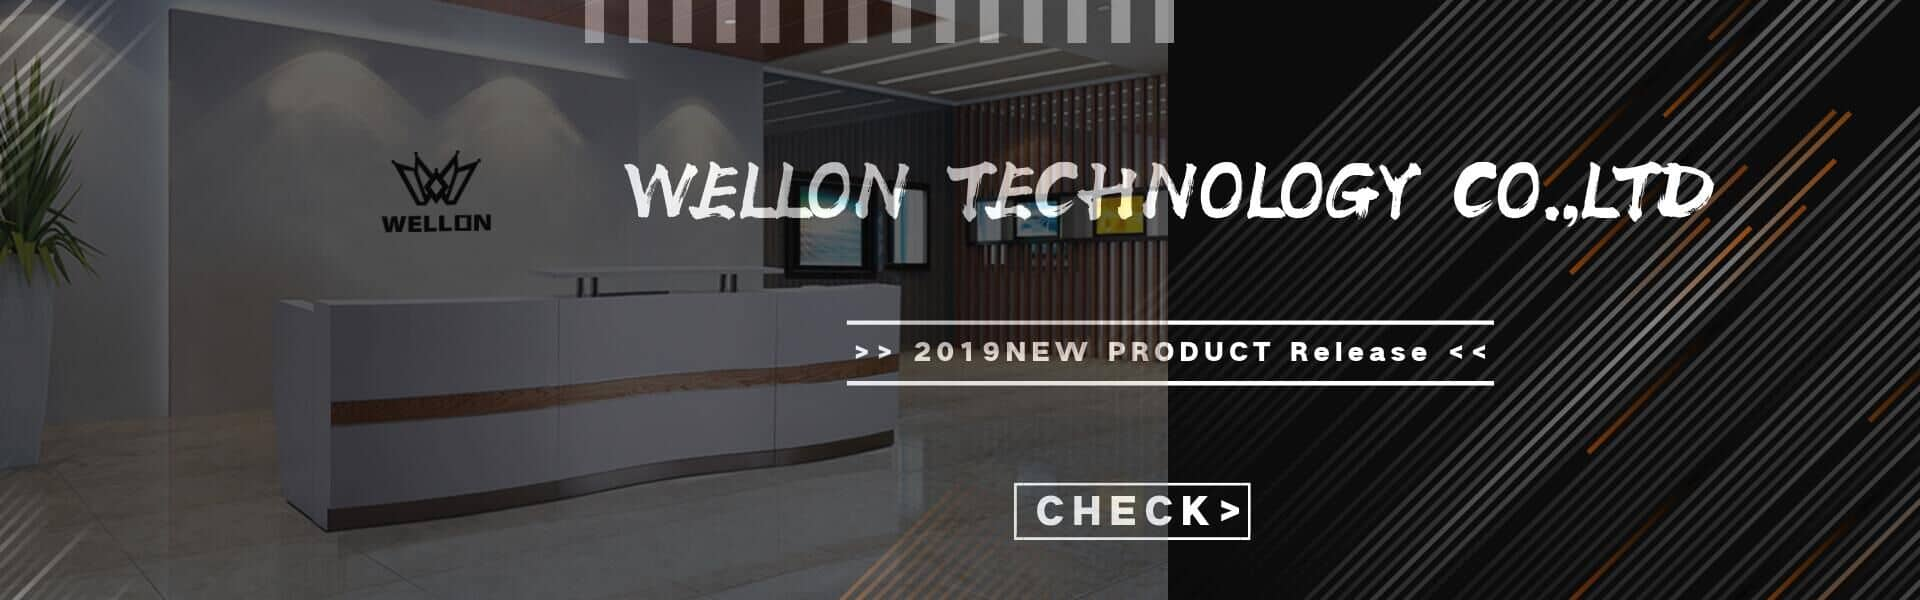 Wellon is leading China vaporizer industry